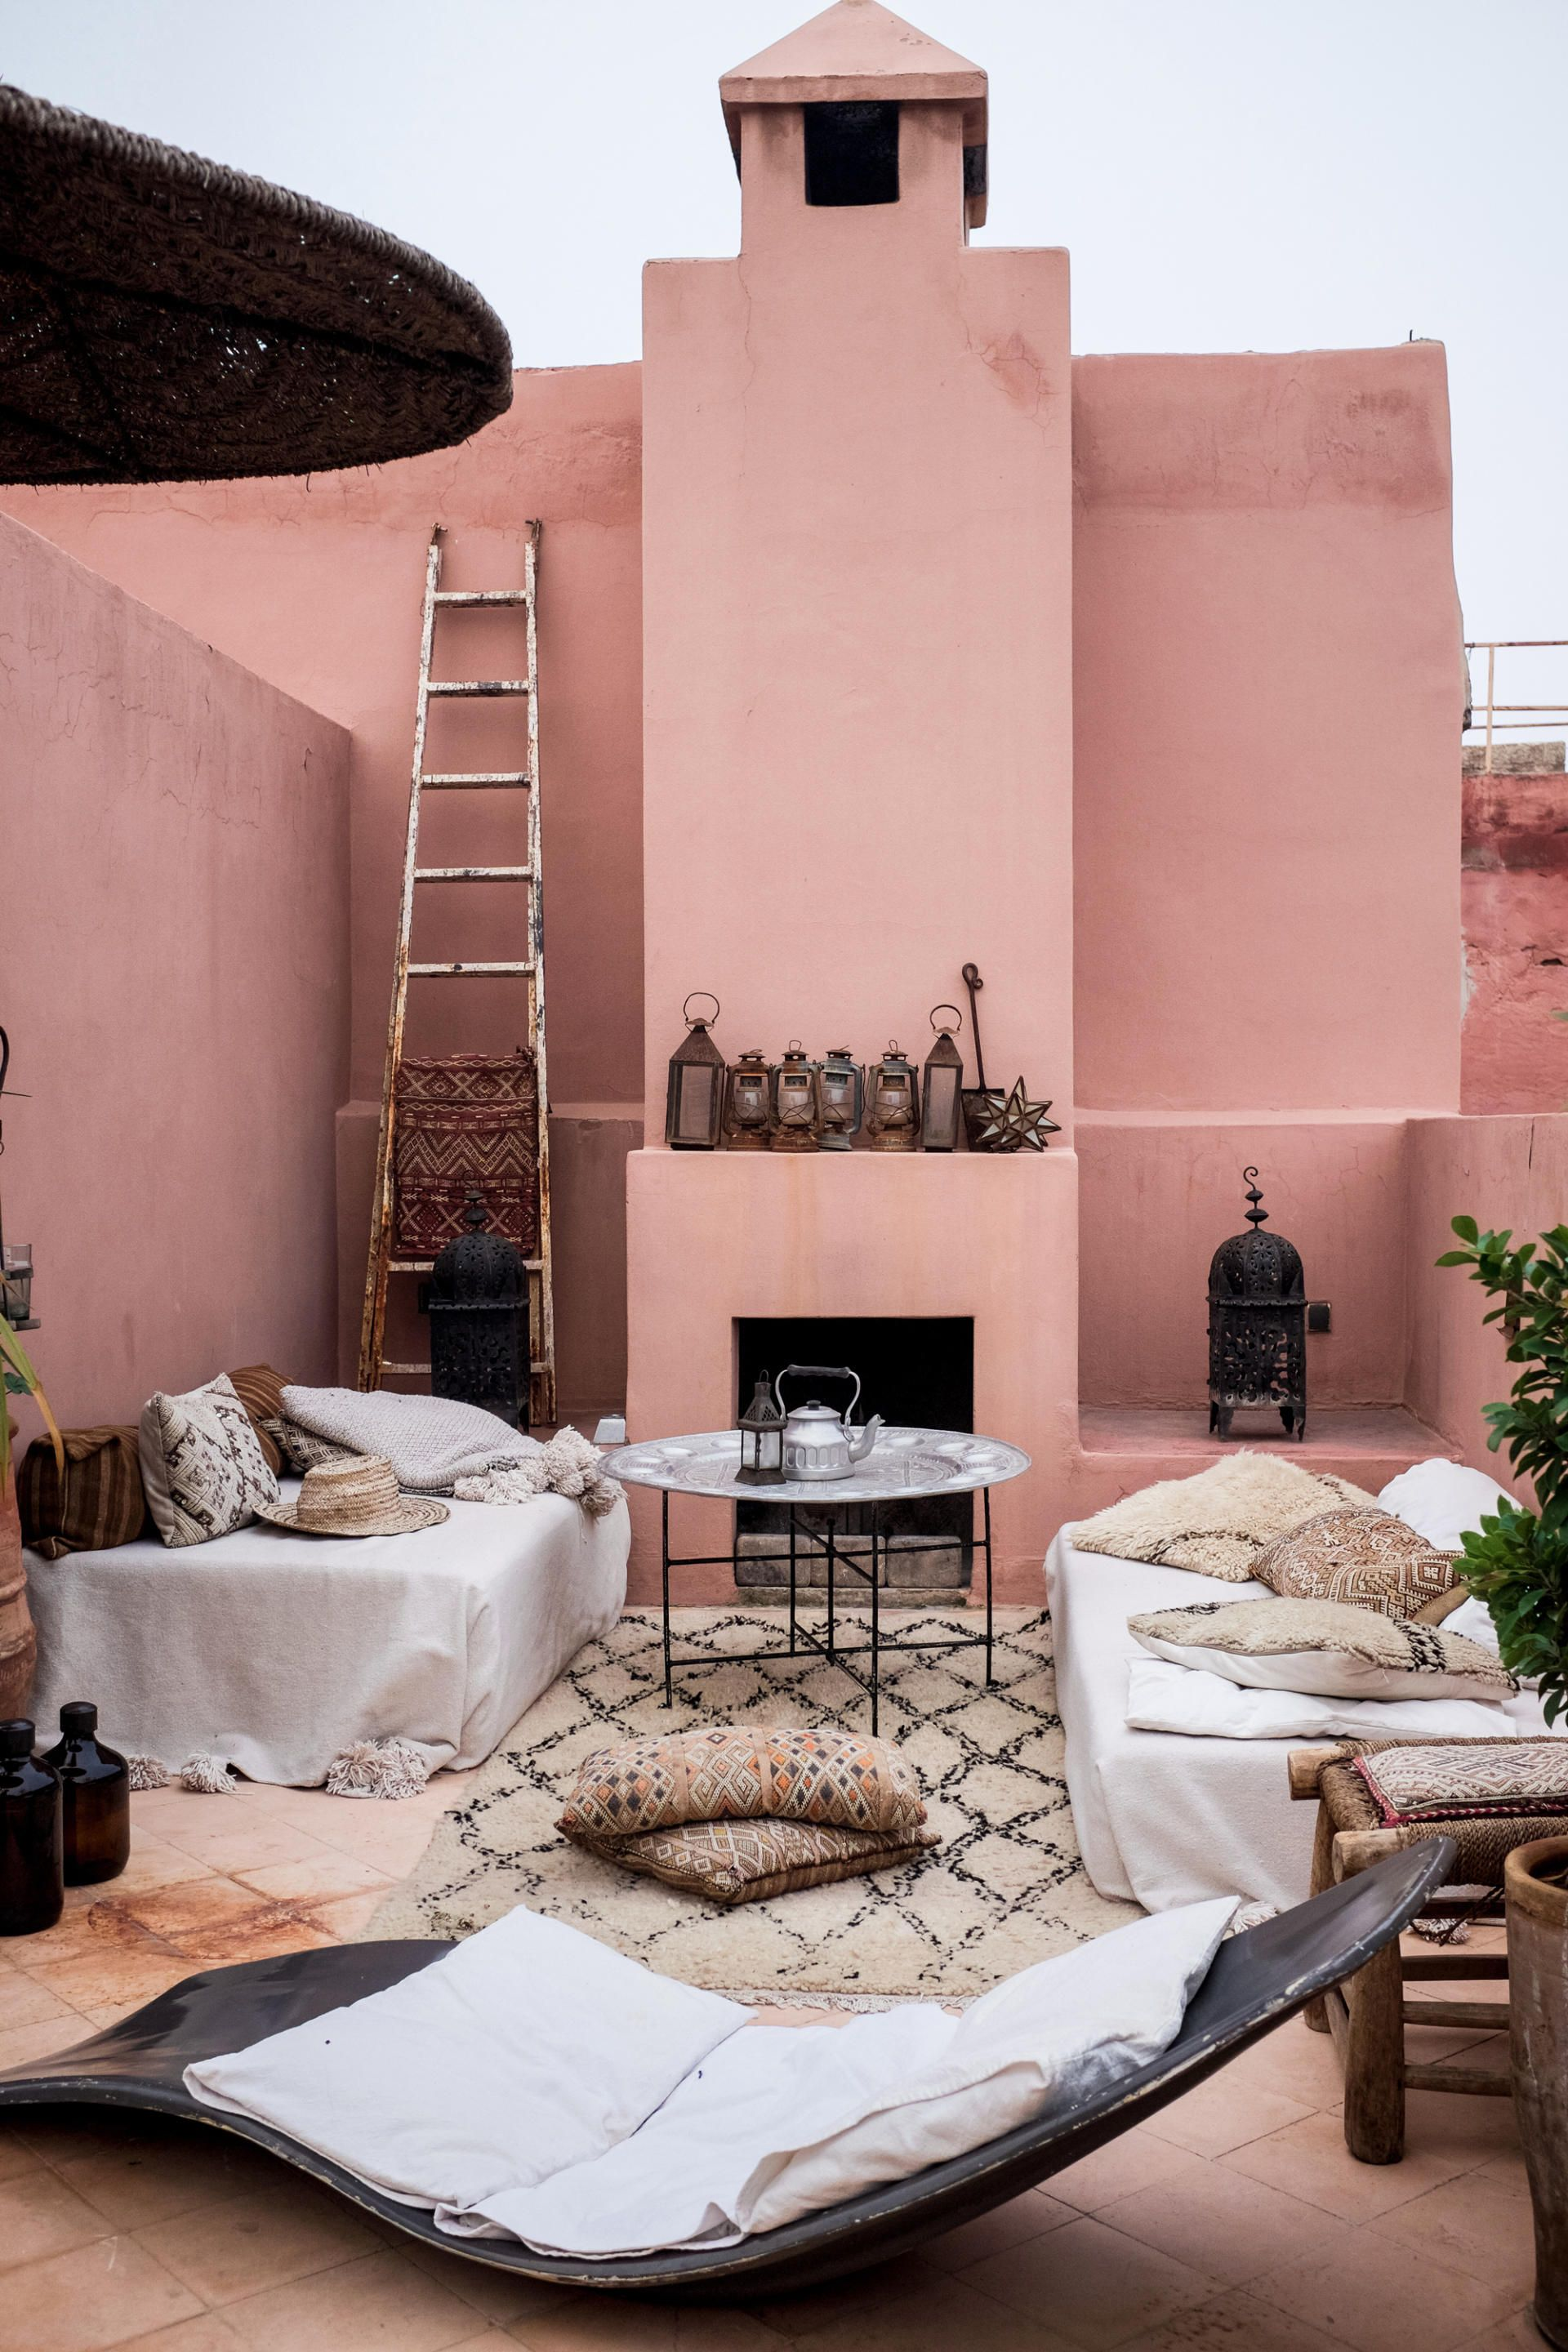 Lavabo Salle De Bain Ouedkniss ~ airbnb riad marrakech i stayed in the most amazing airbnb in